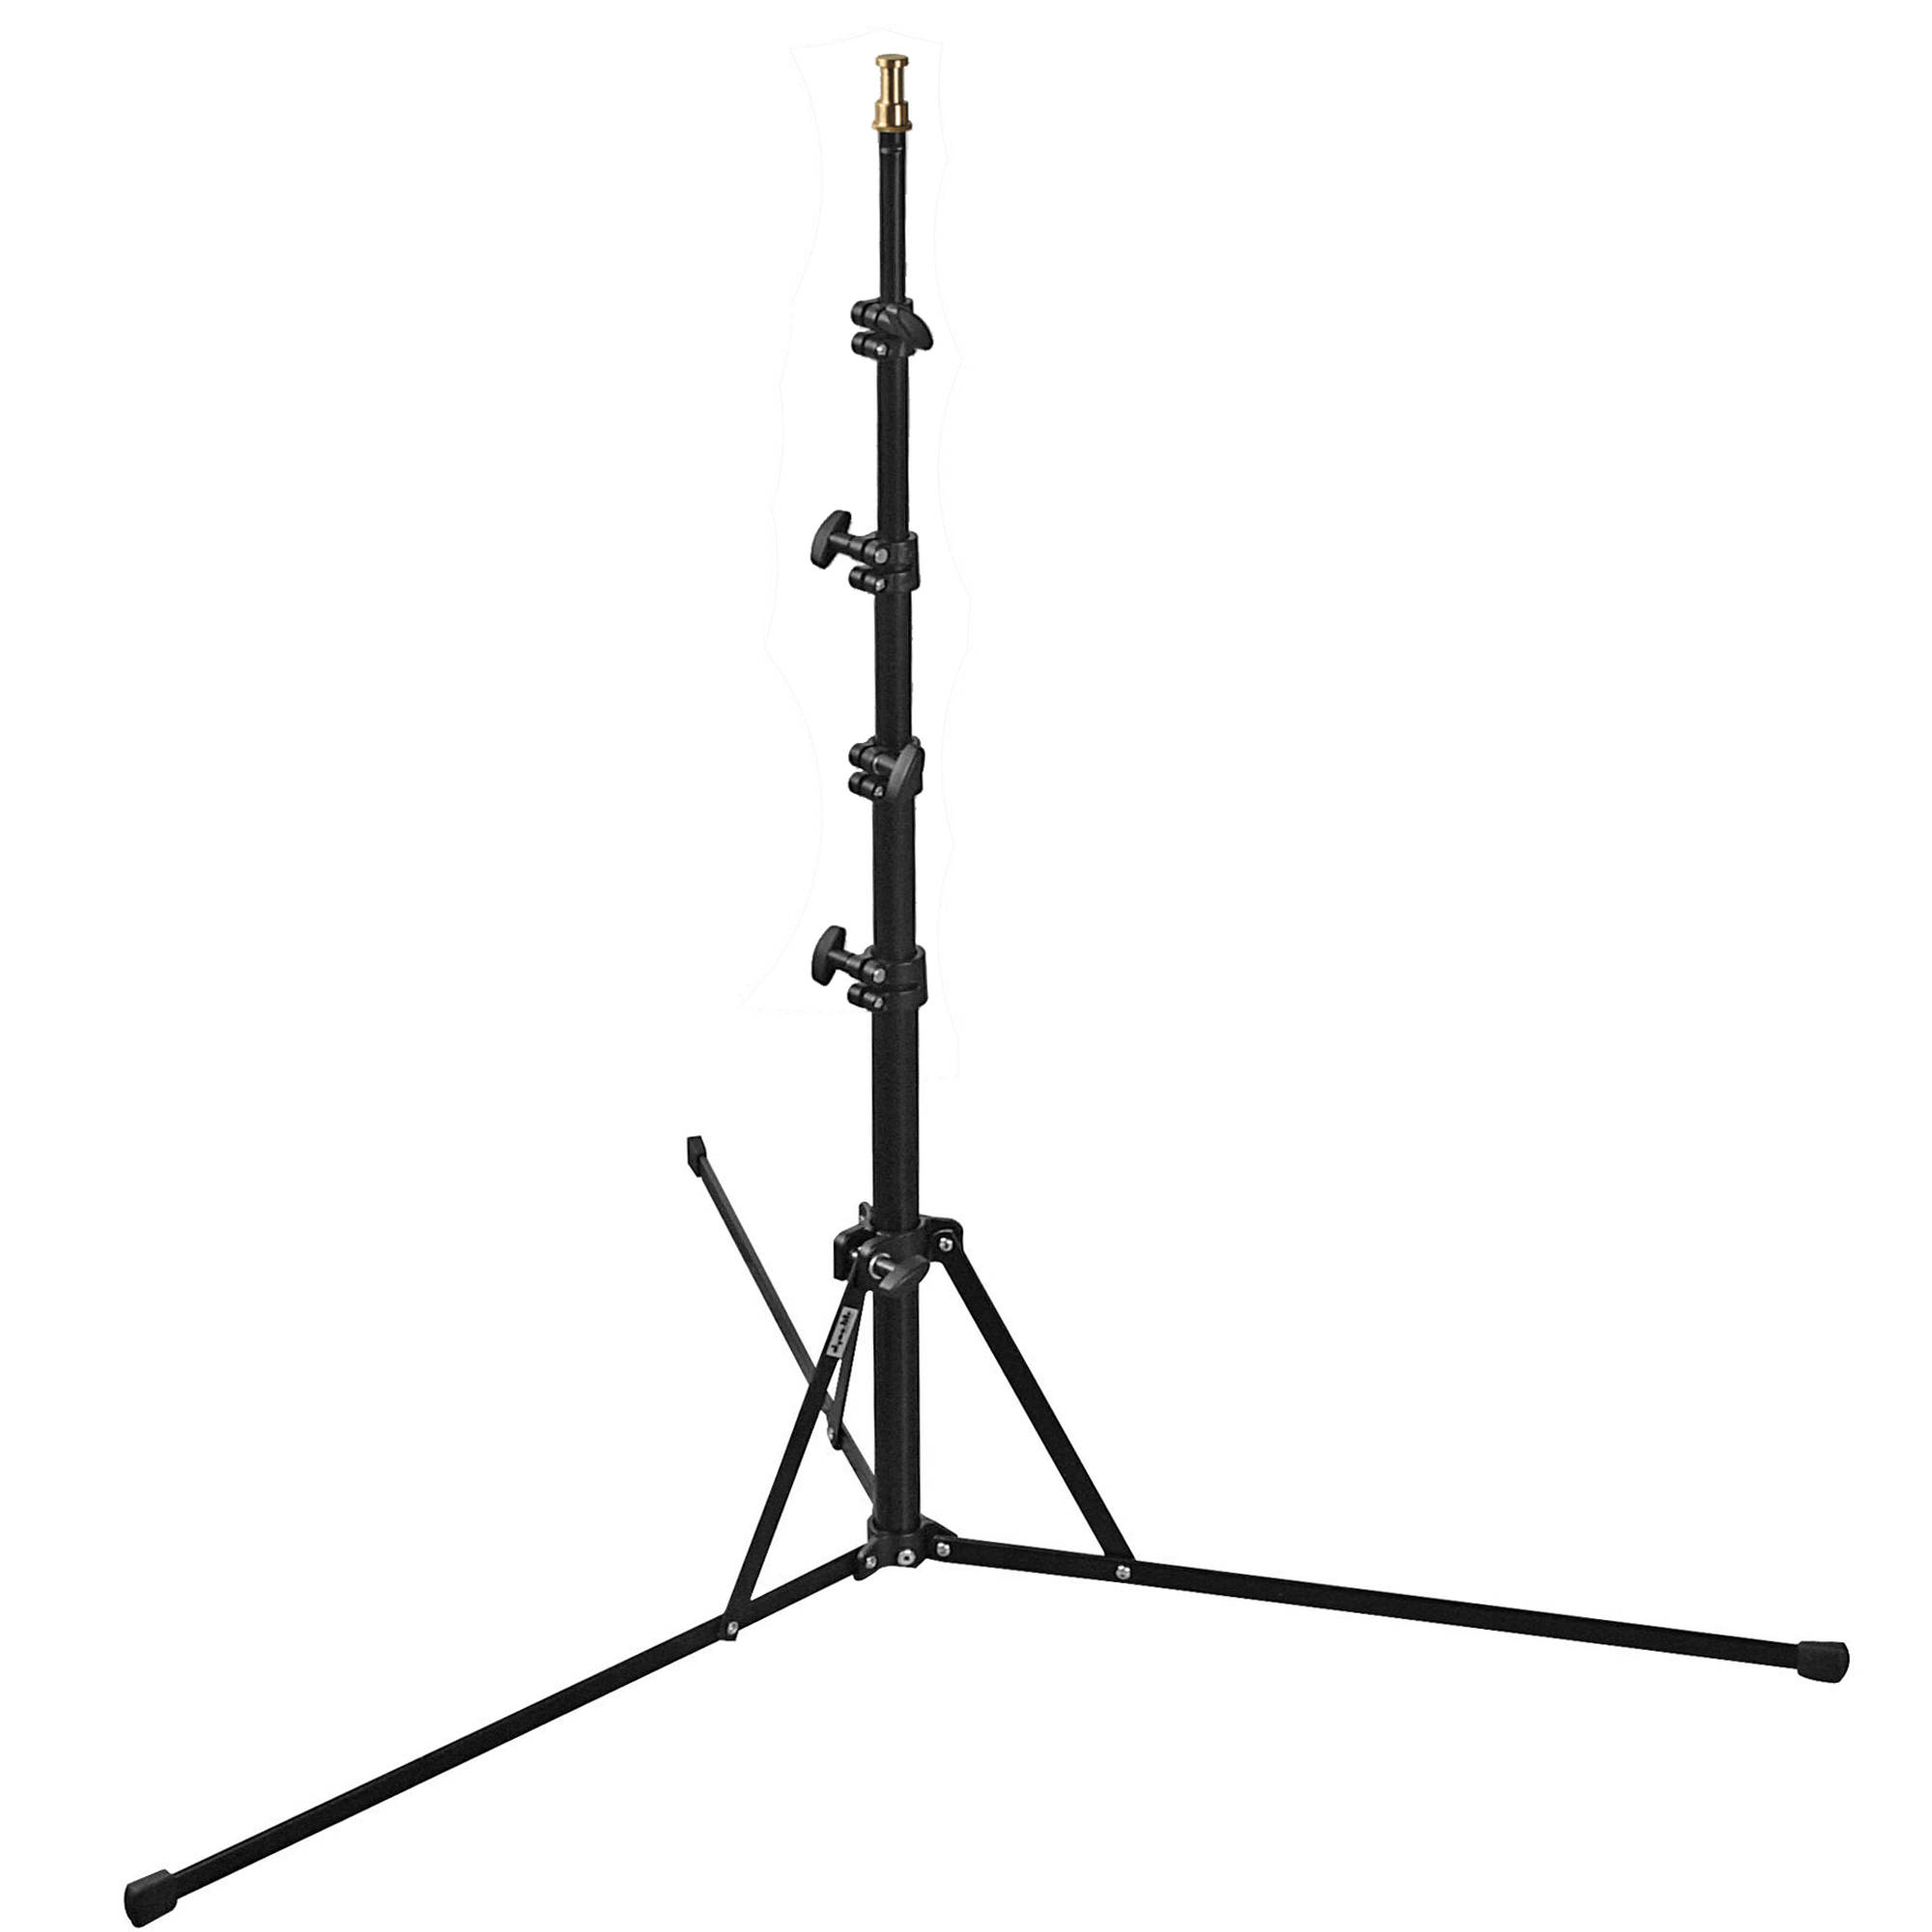 Dynalite Compact Lightweight Light Stand Black 6 5